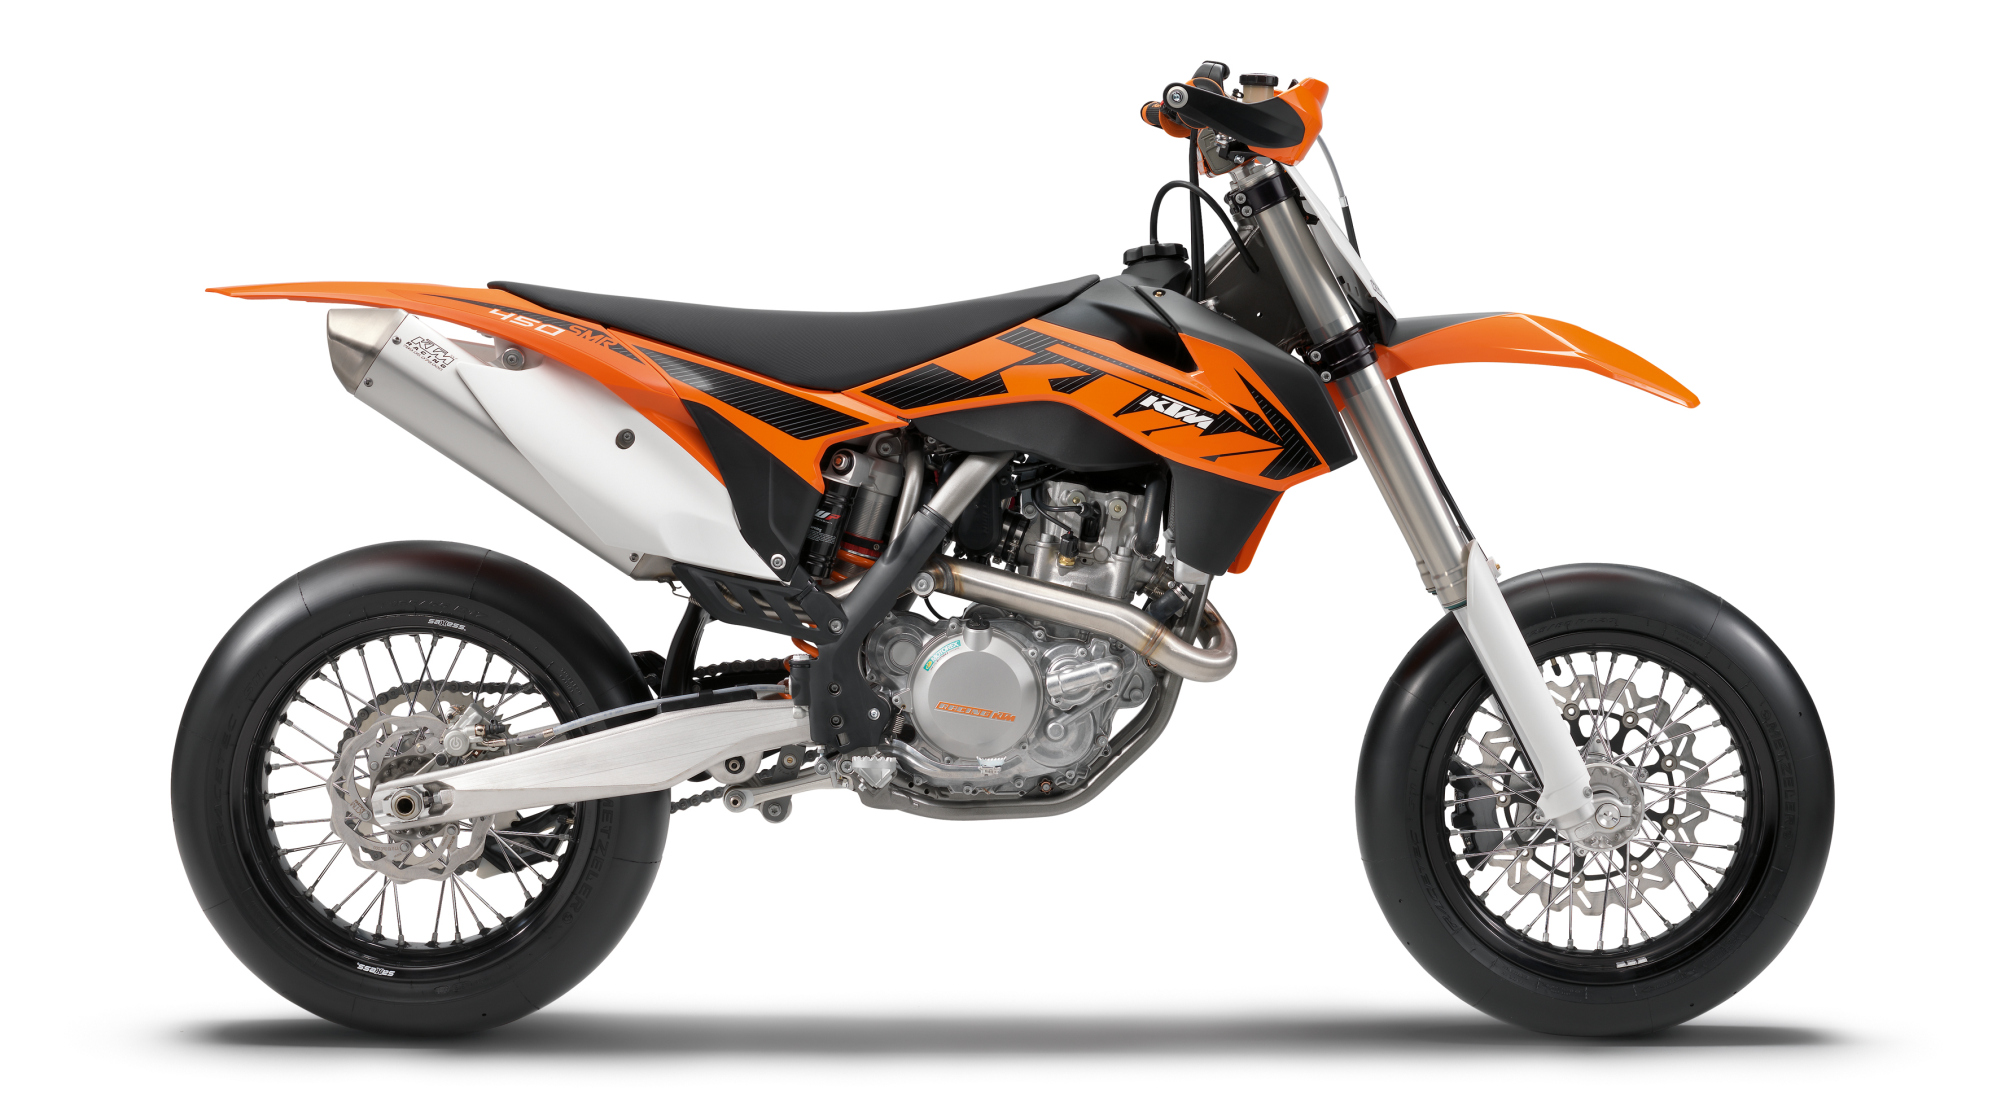 ktm 450 smr fiche technique avis et prix la poign e dans l 39 angle. Black Bedroom Furniture Sets. Home Design Ideas